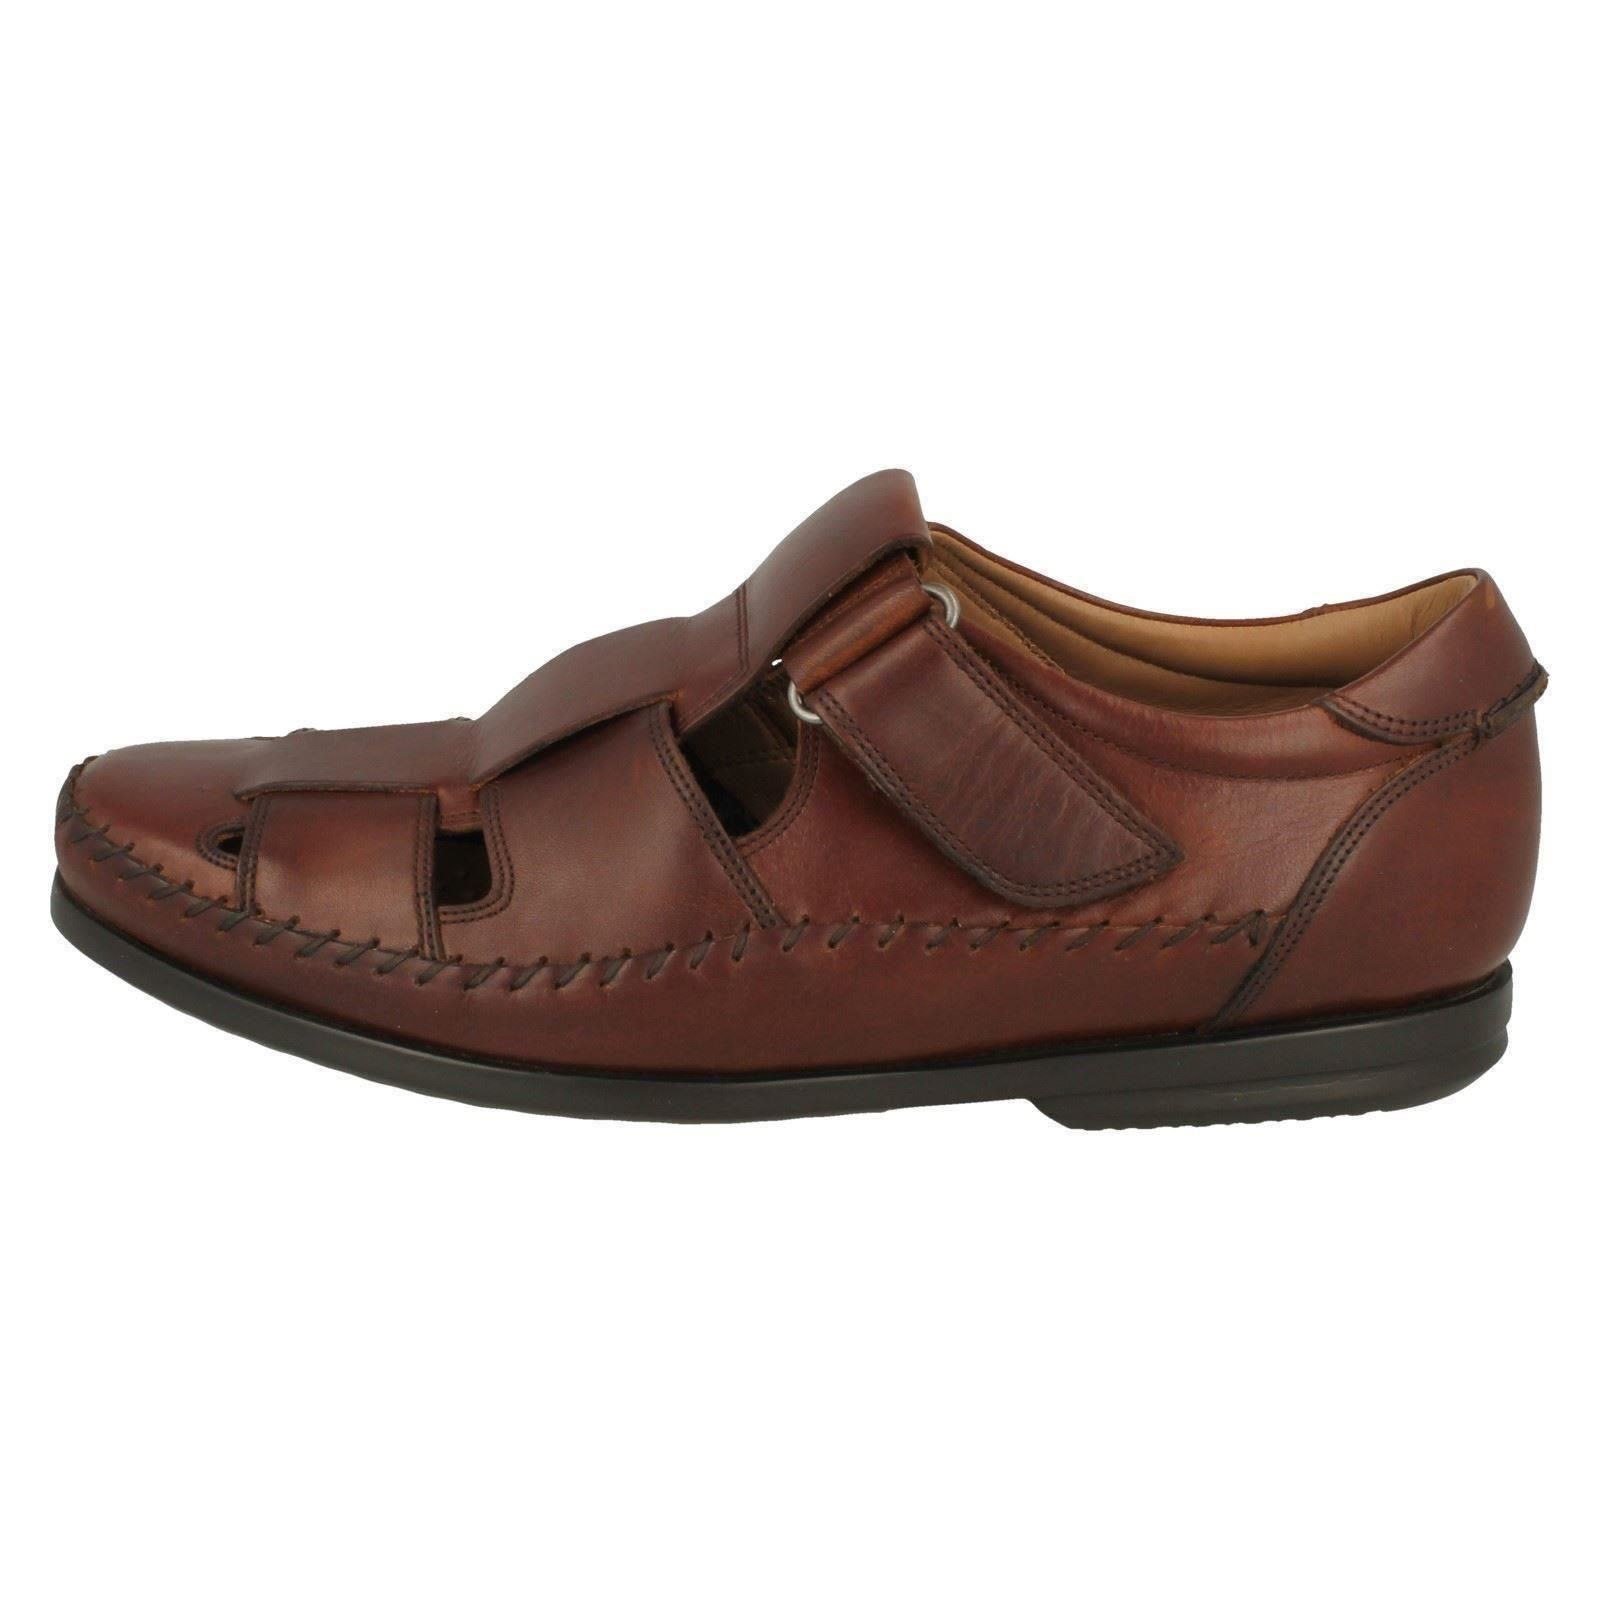 Mens Clarks Casual Casual Casual Strapped Sandals 'Un Gala Strap' 9cf540